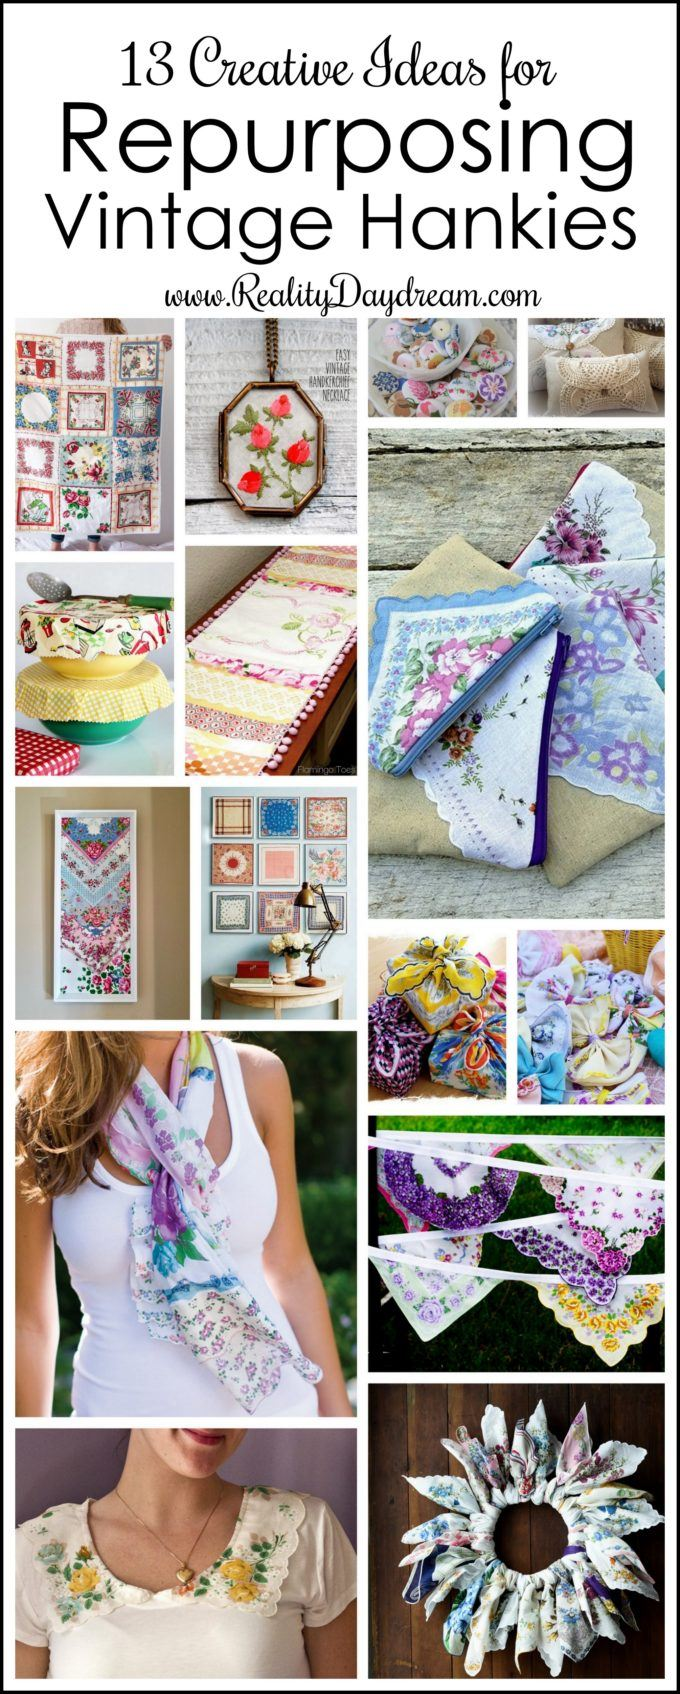 Roundup of Repurposed VIntage Hankies {Reality Daydream}